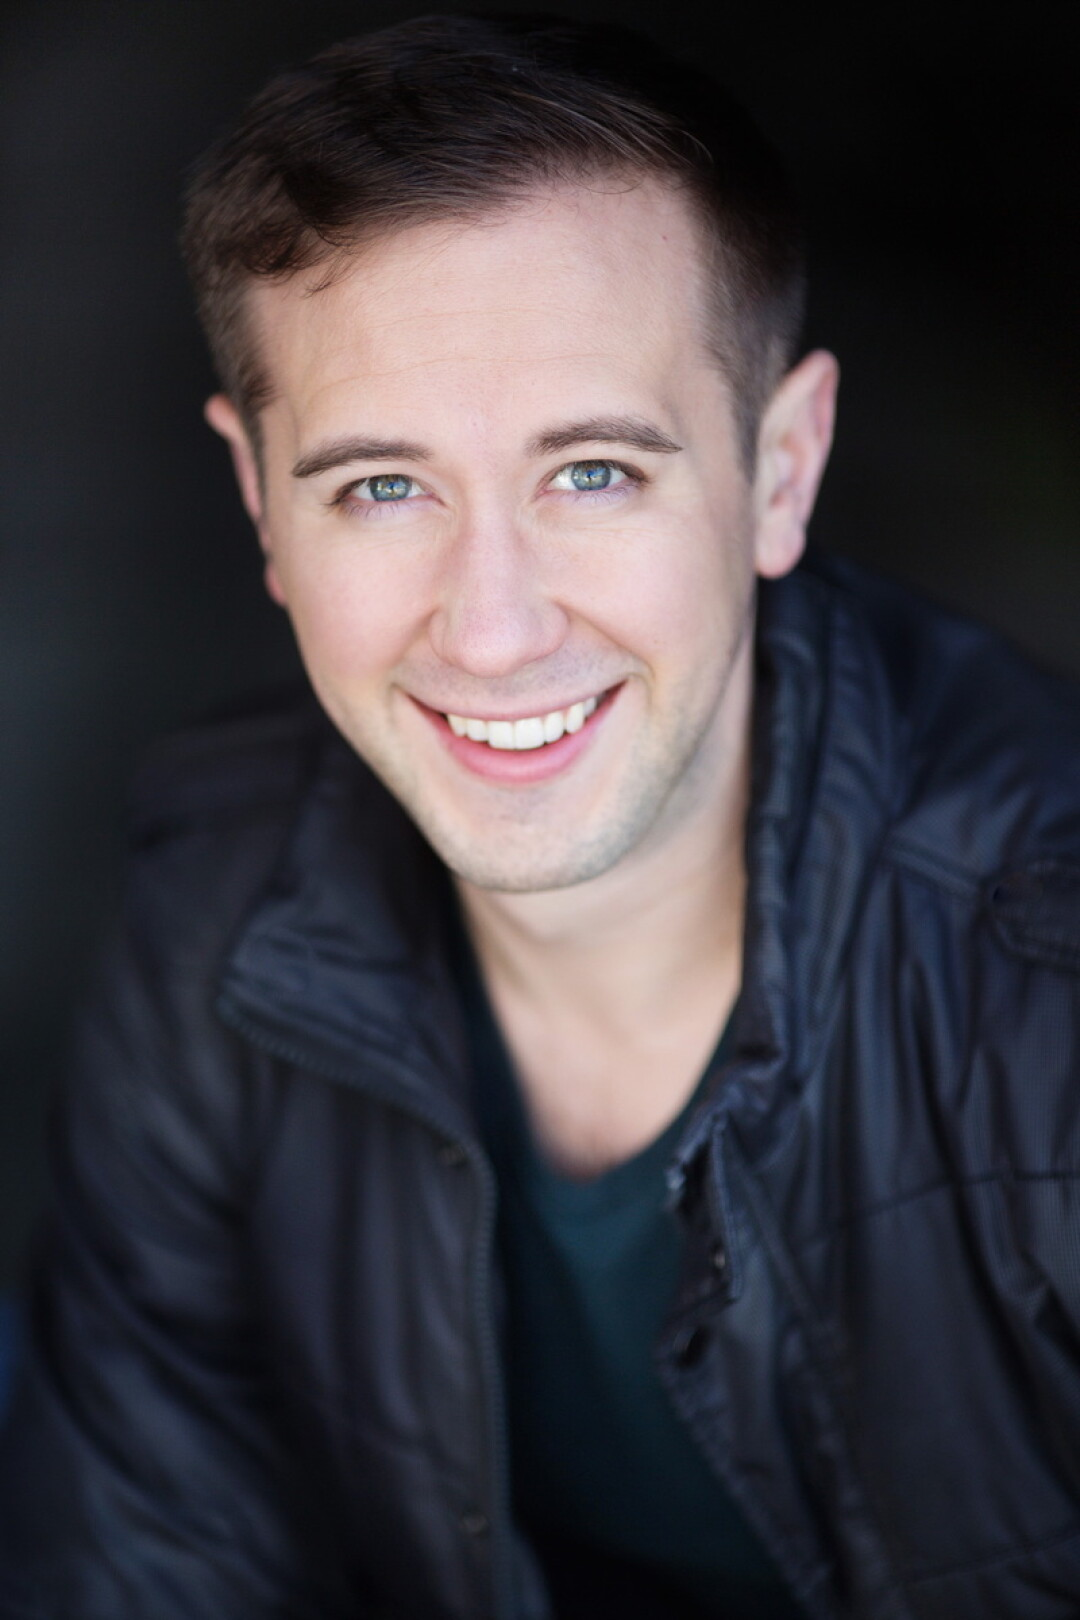 Former local and professional opera singer Samuel Schultz sang in the Houston Symphony's performance of Alban Berg's opera Wozzeck, which won a Grammy for Best Opera Recording earlier this year.